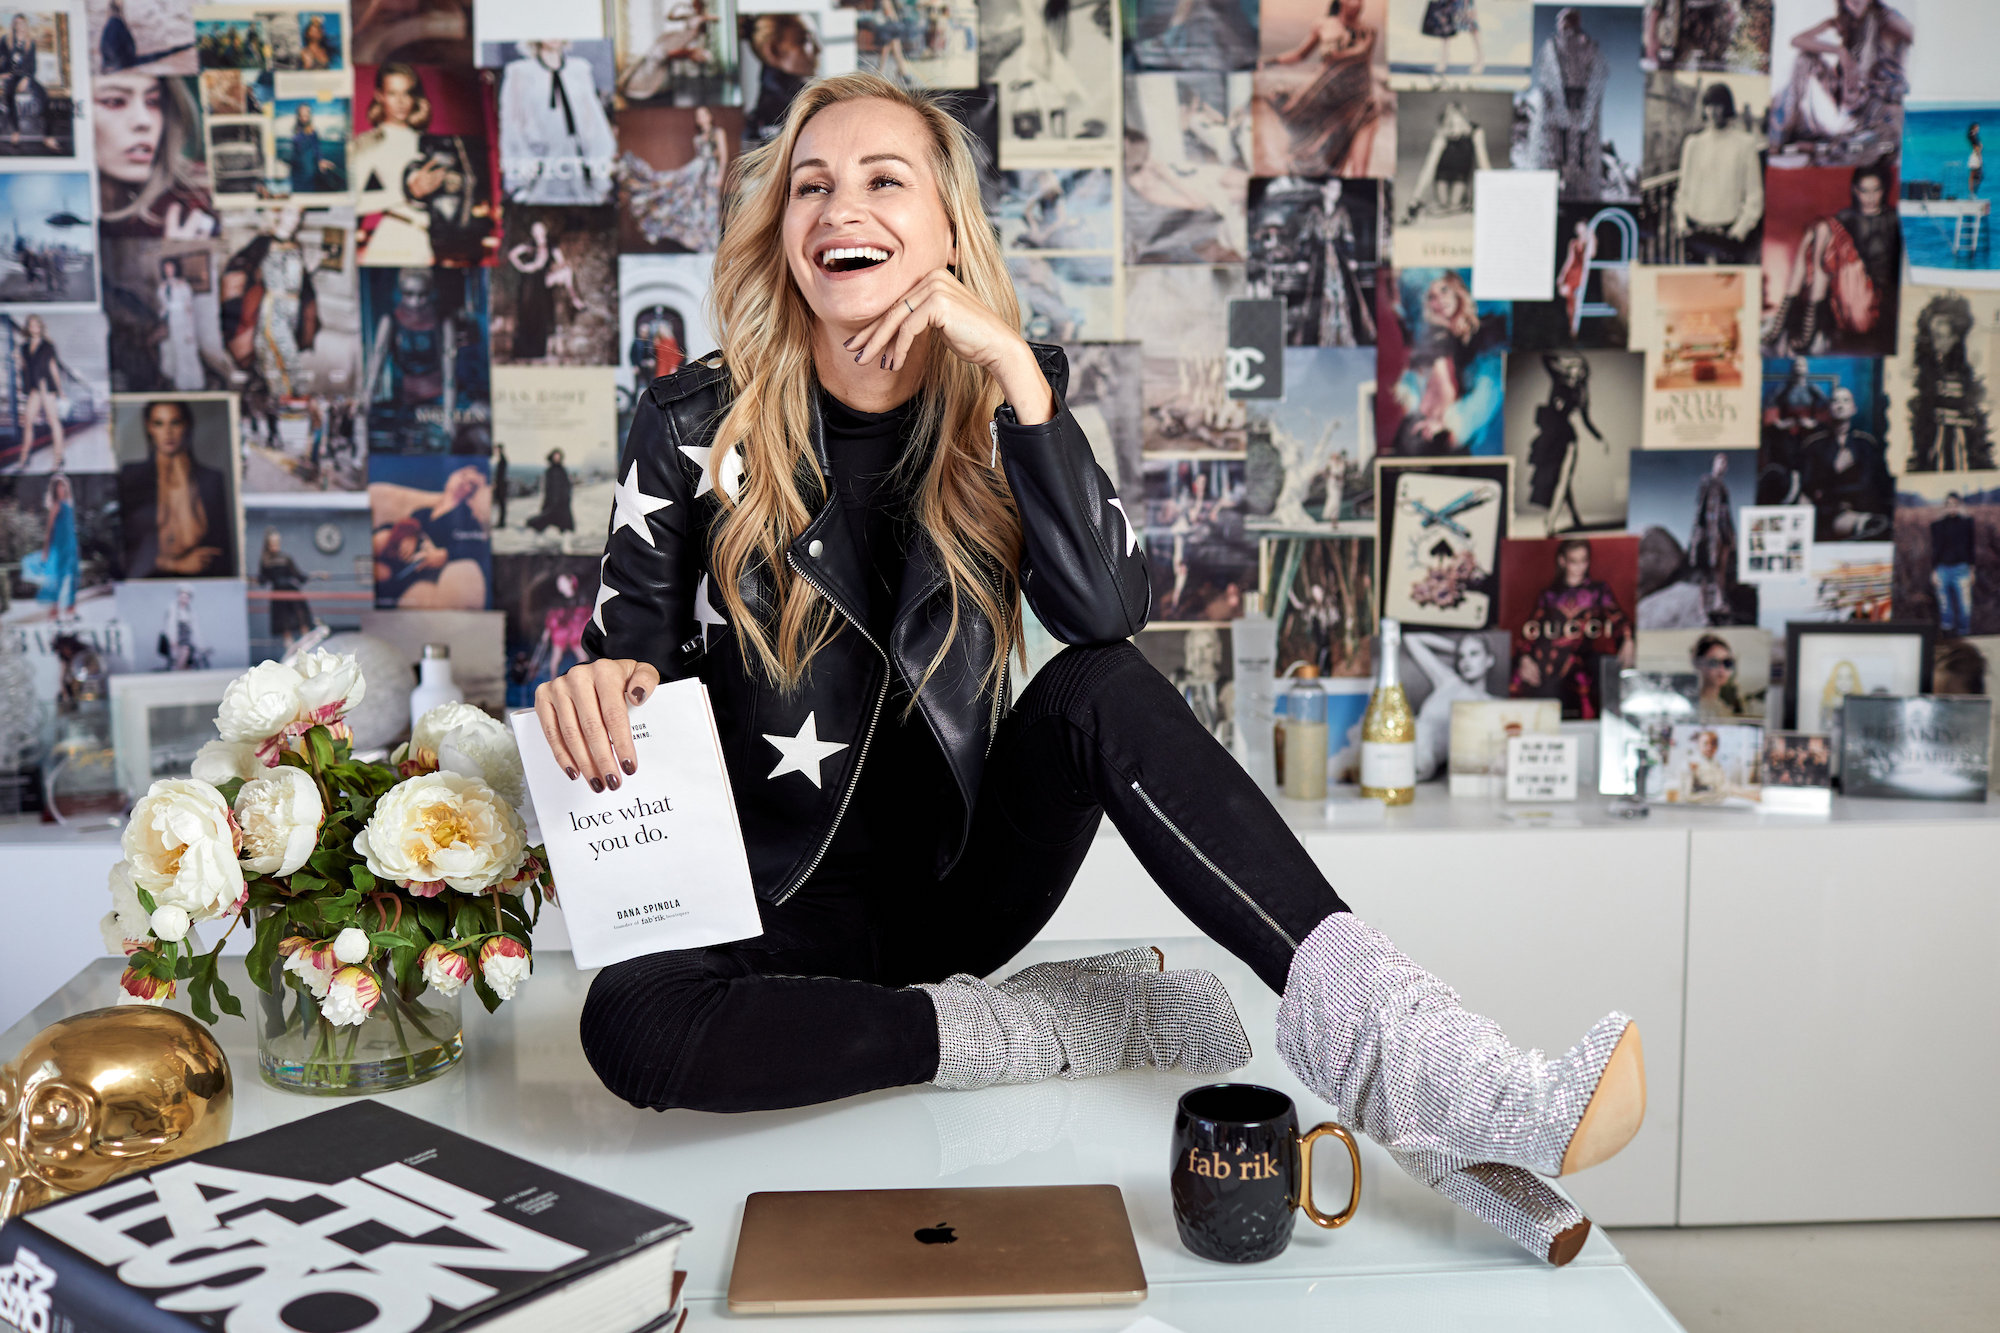 Dana Spinola, sitting on her desk in the fab'rik corporate office